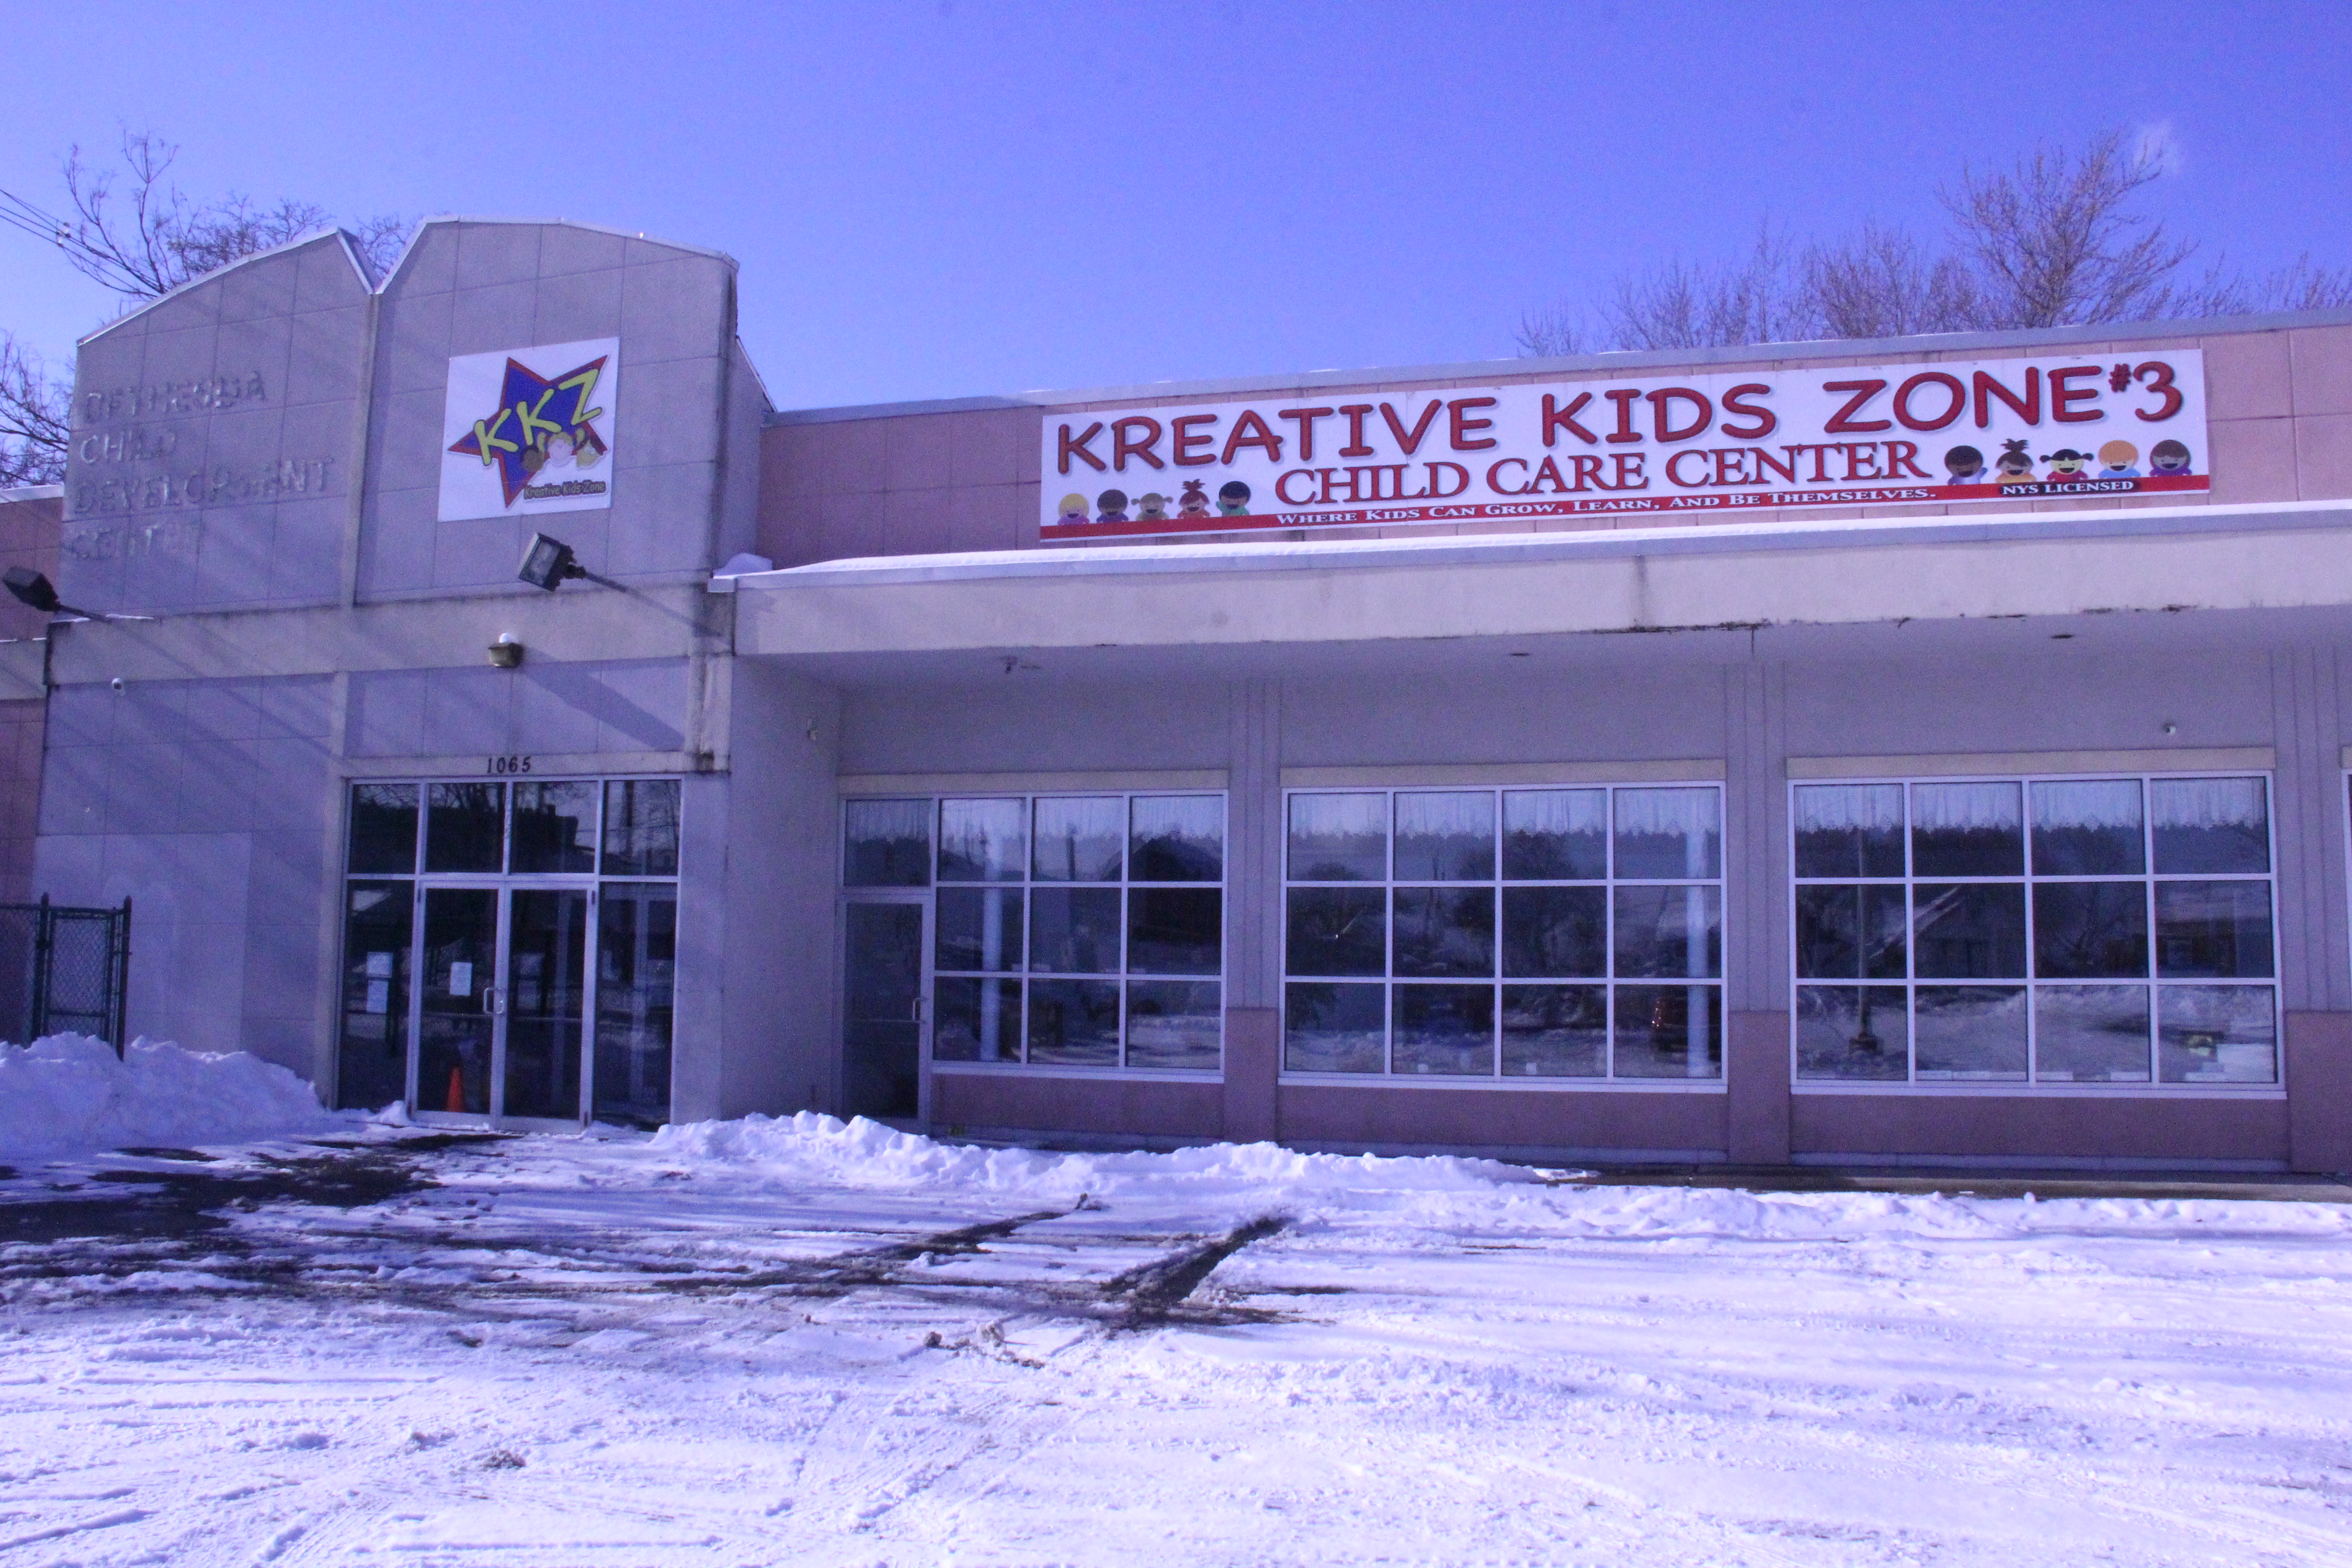 Kreative Kids Zone